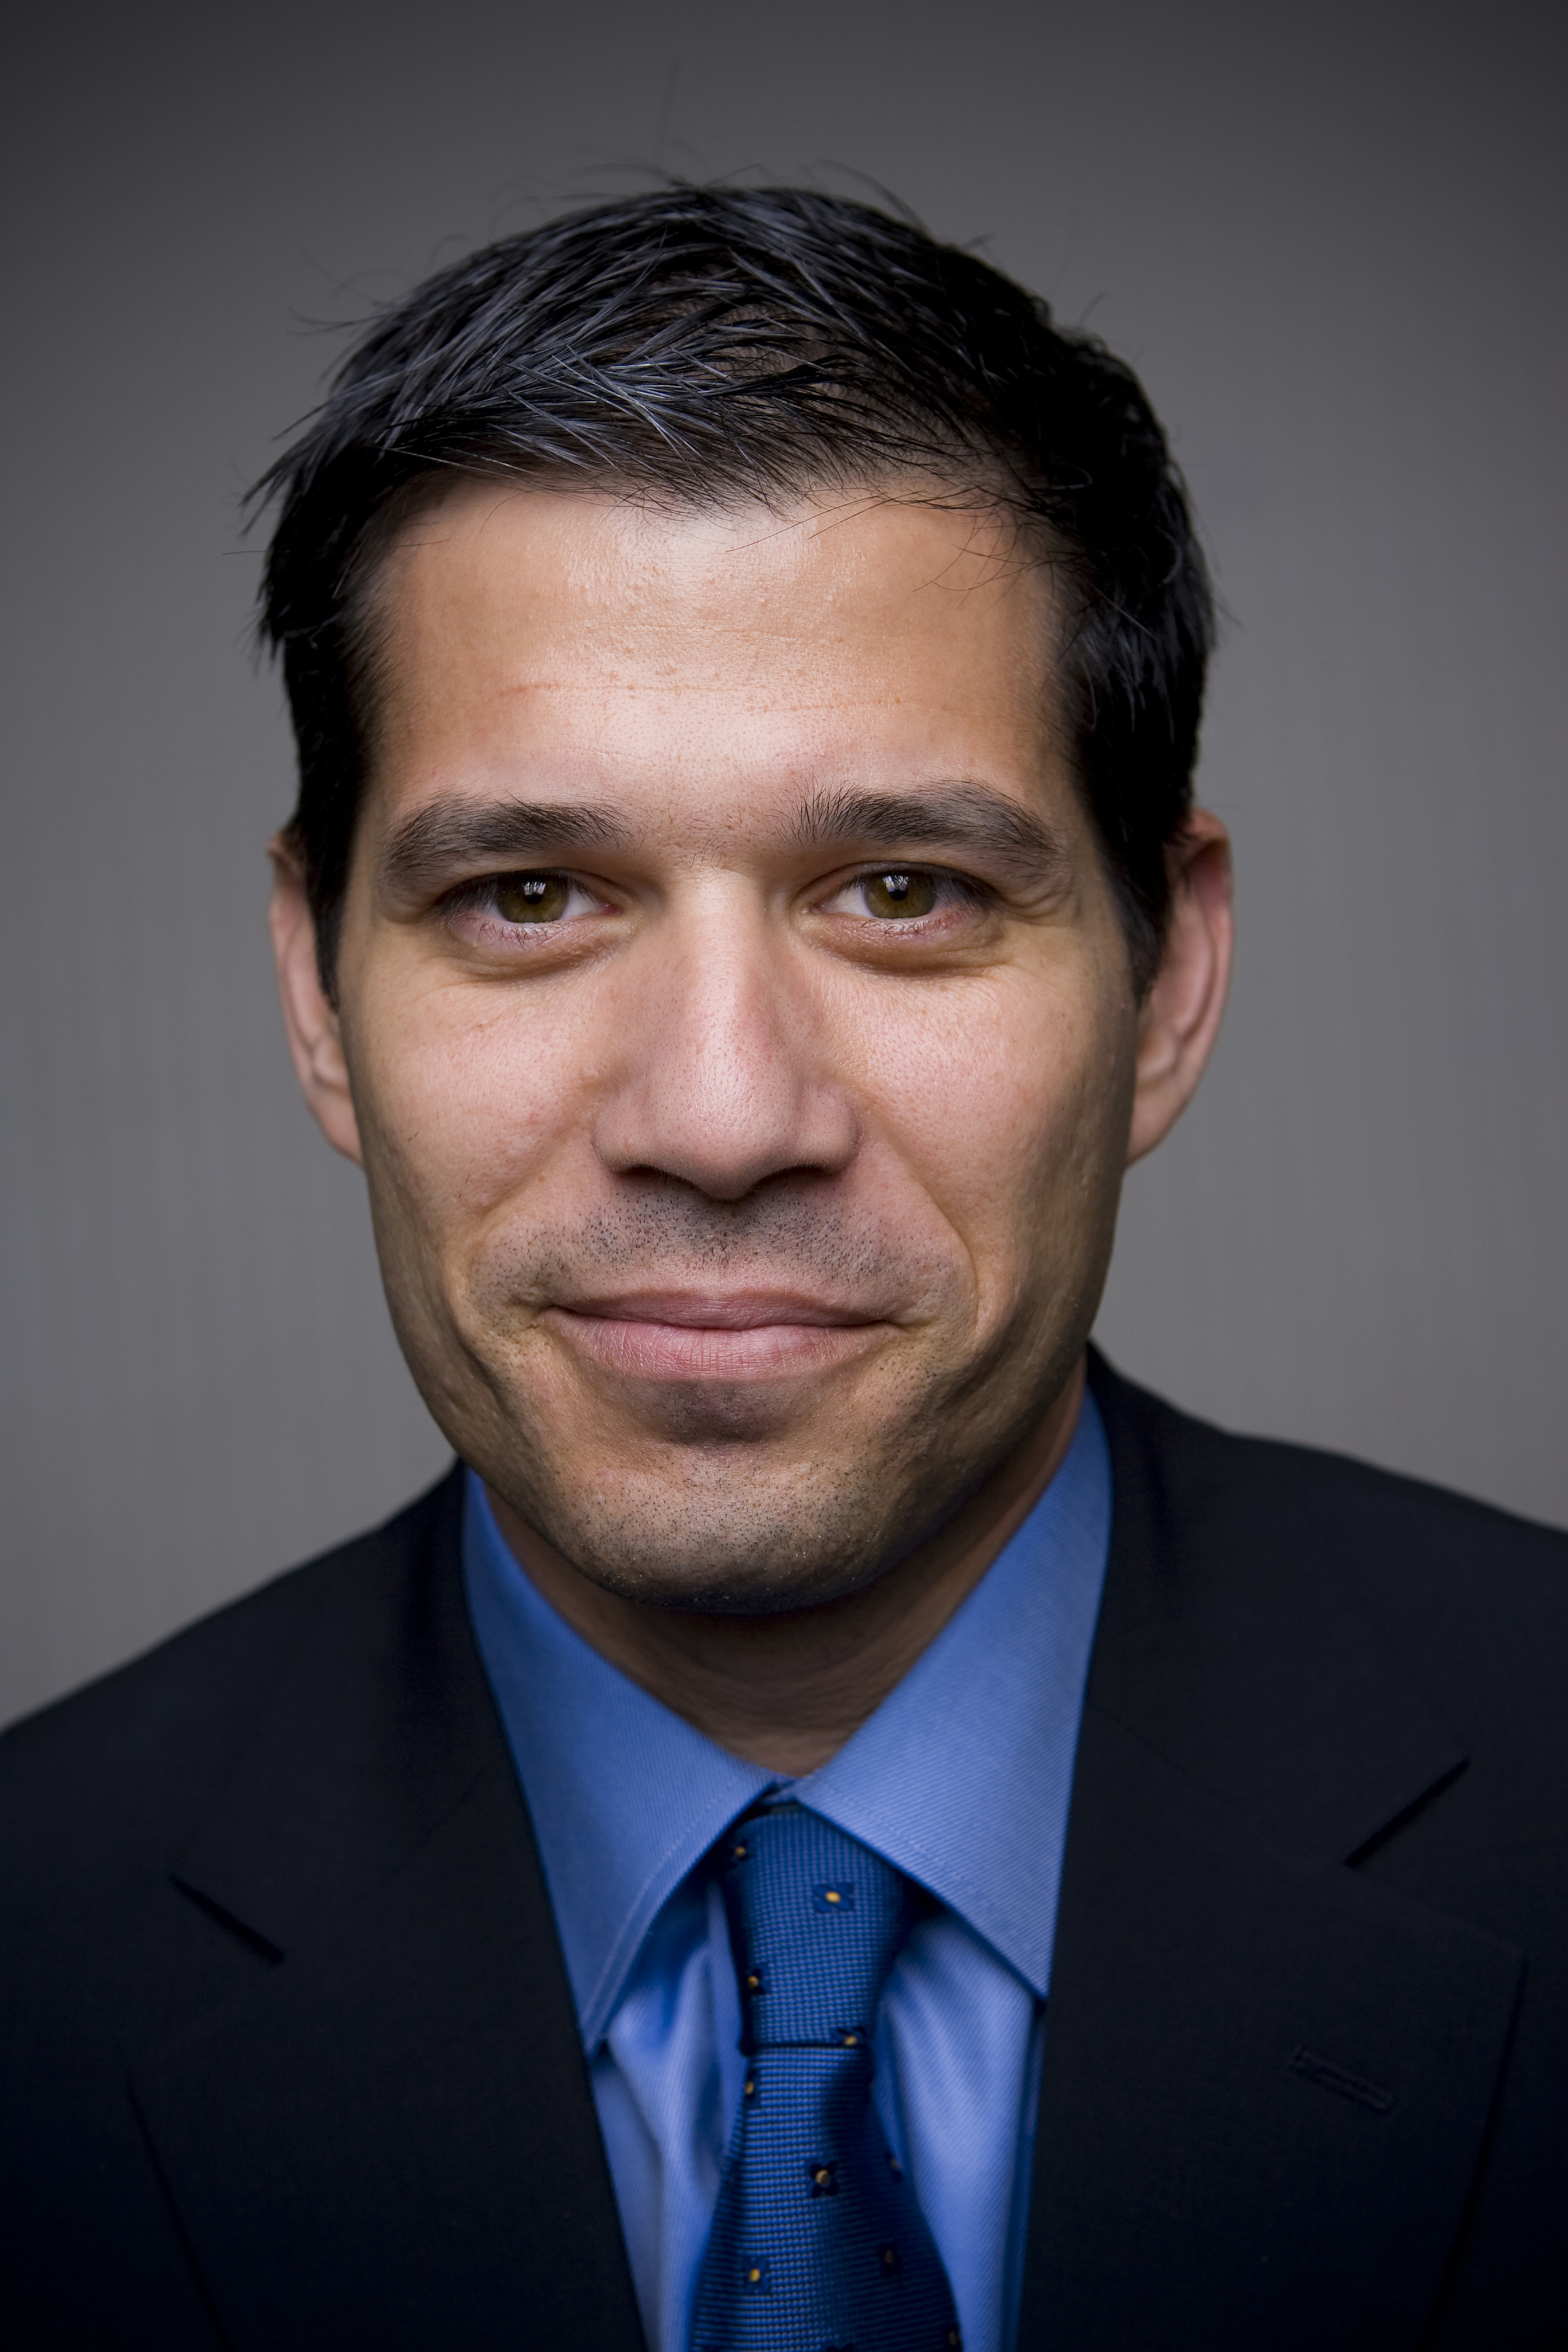 Israeli entrepreneur Shai Agassi, founder and former CEO of Better Place.